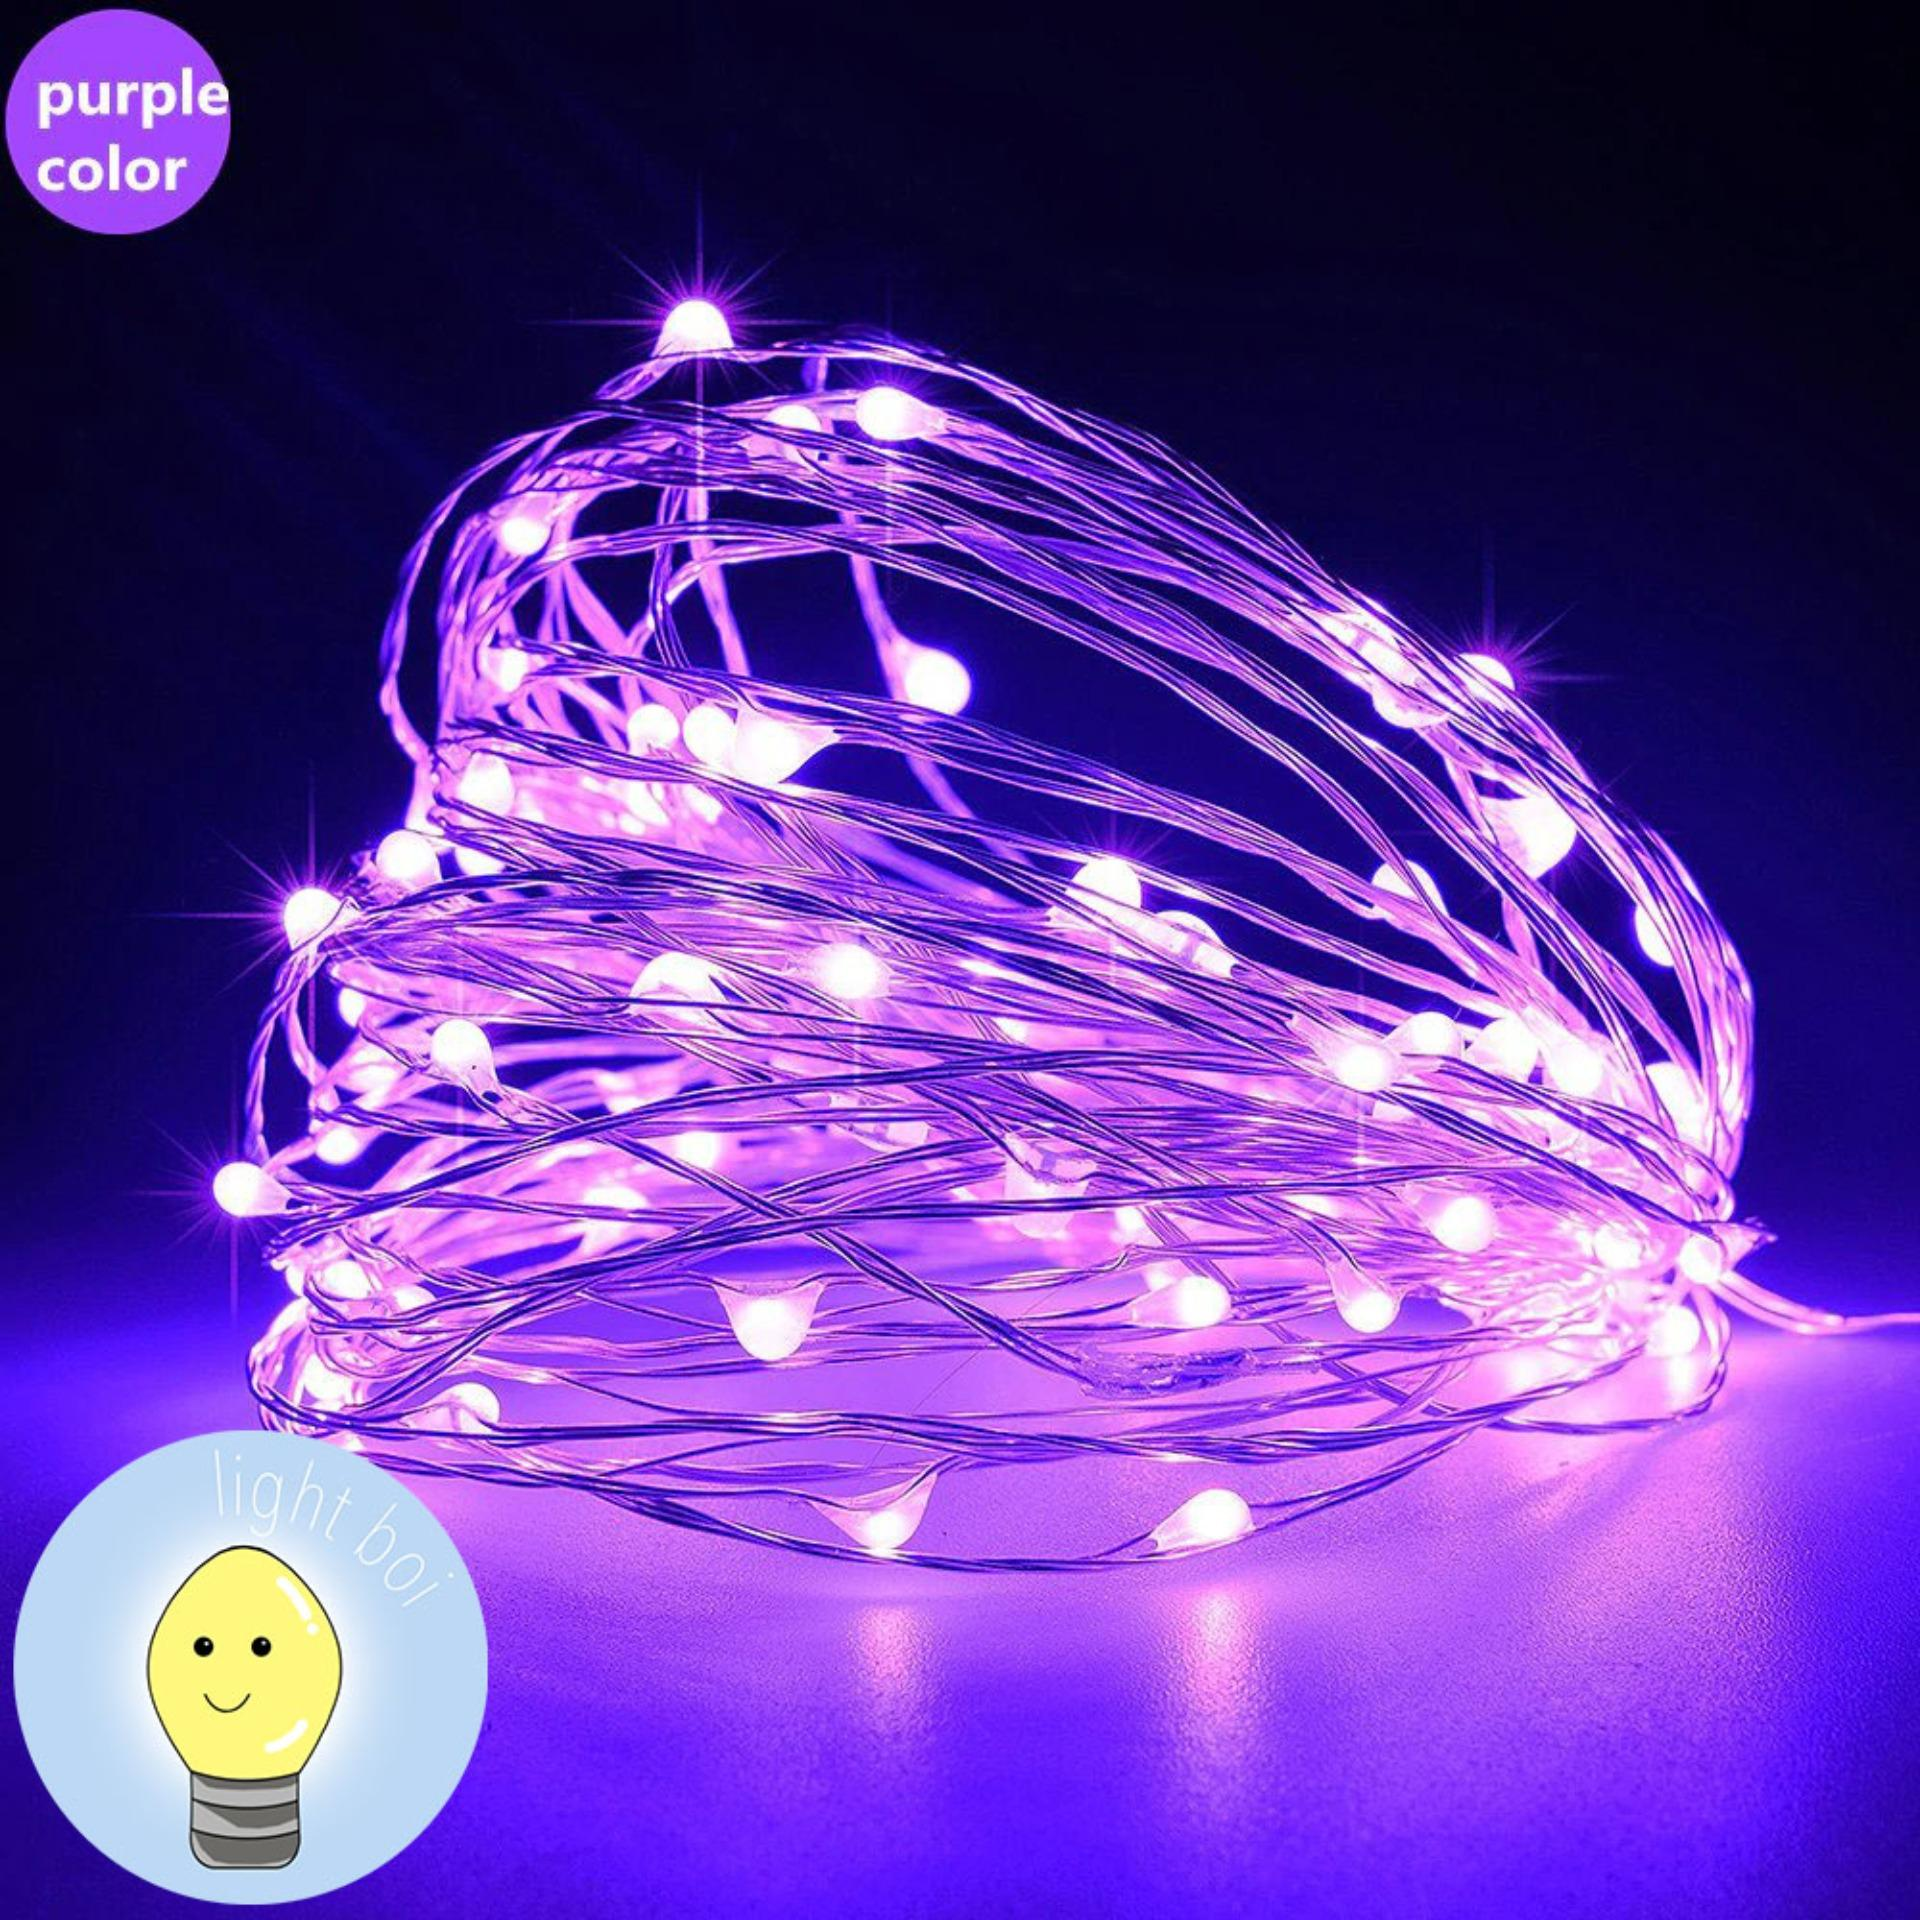 Purple Multicolor Projector Light Rotating Starry Led Projection Moon Star Lamp Home Bedroom Light Decoration Drop Ship Discounts Price Led Lamps